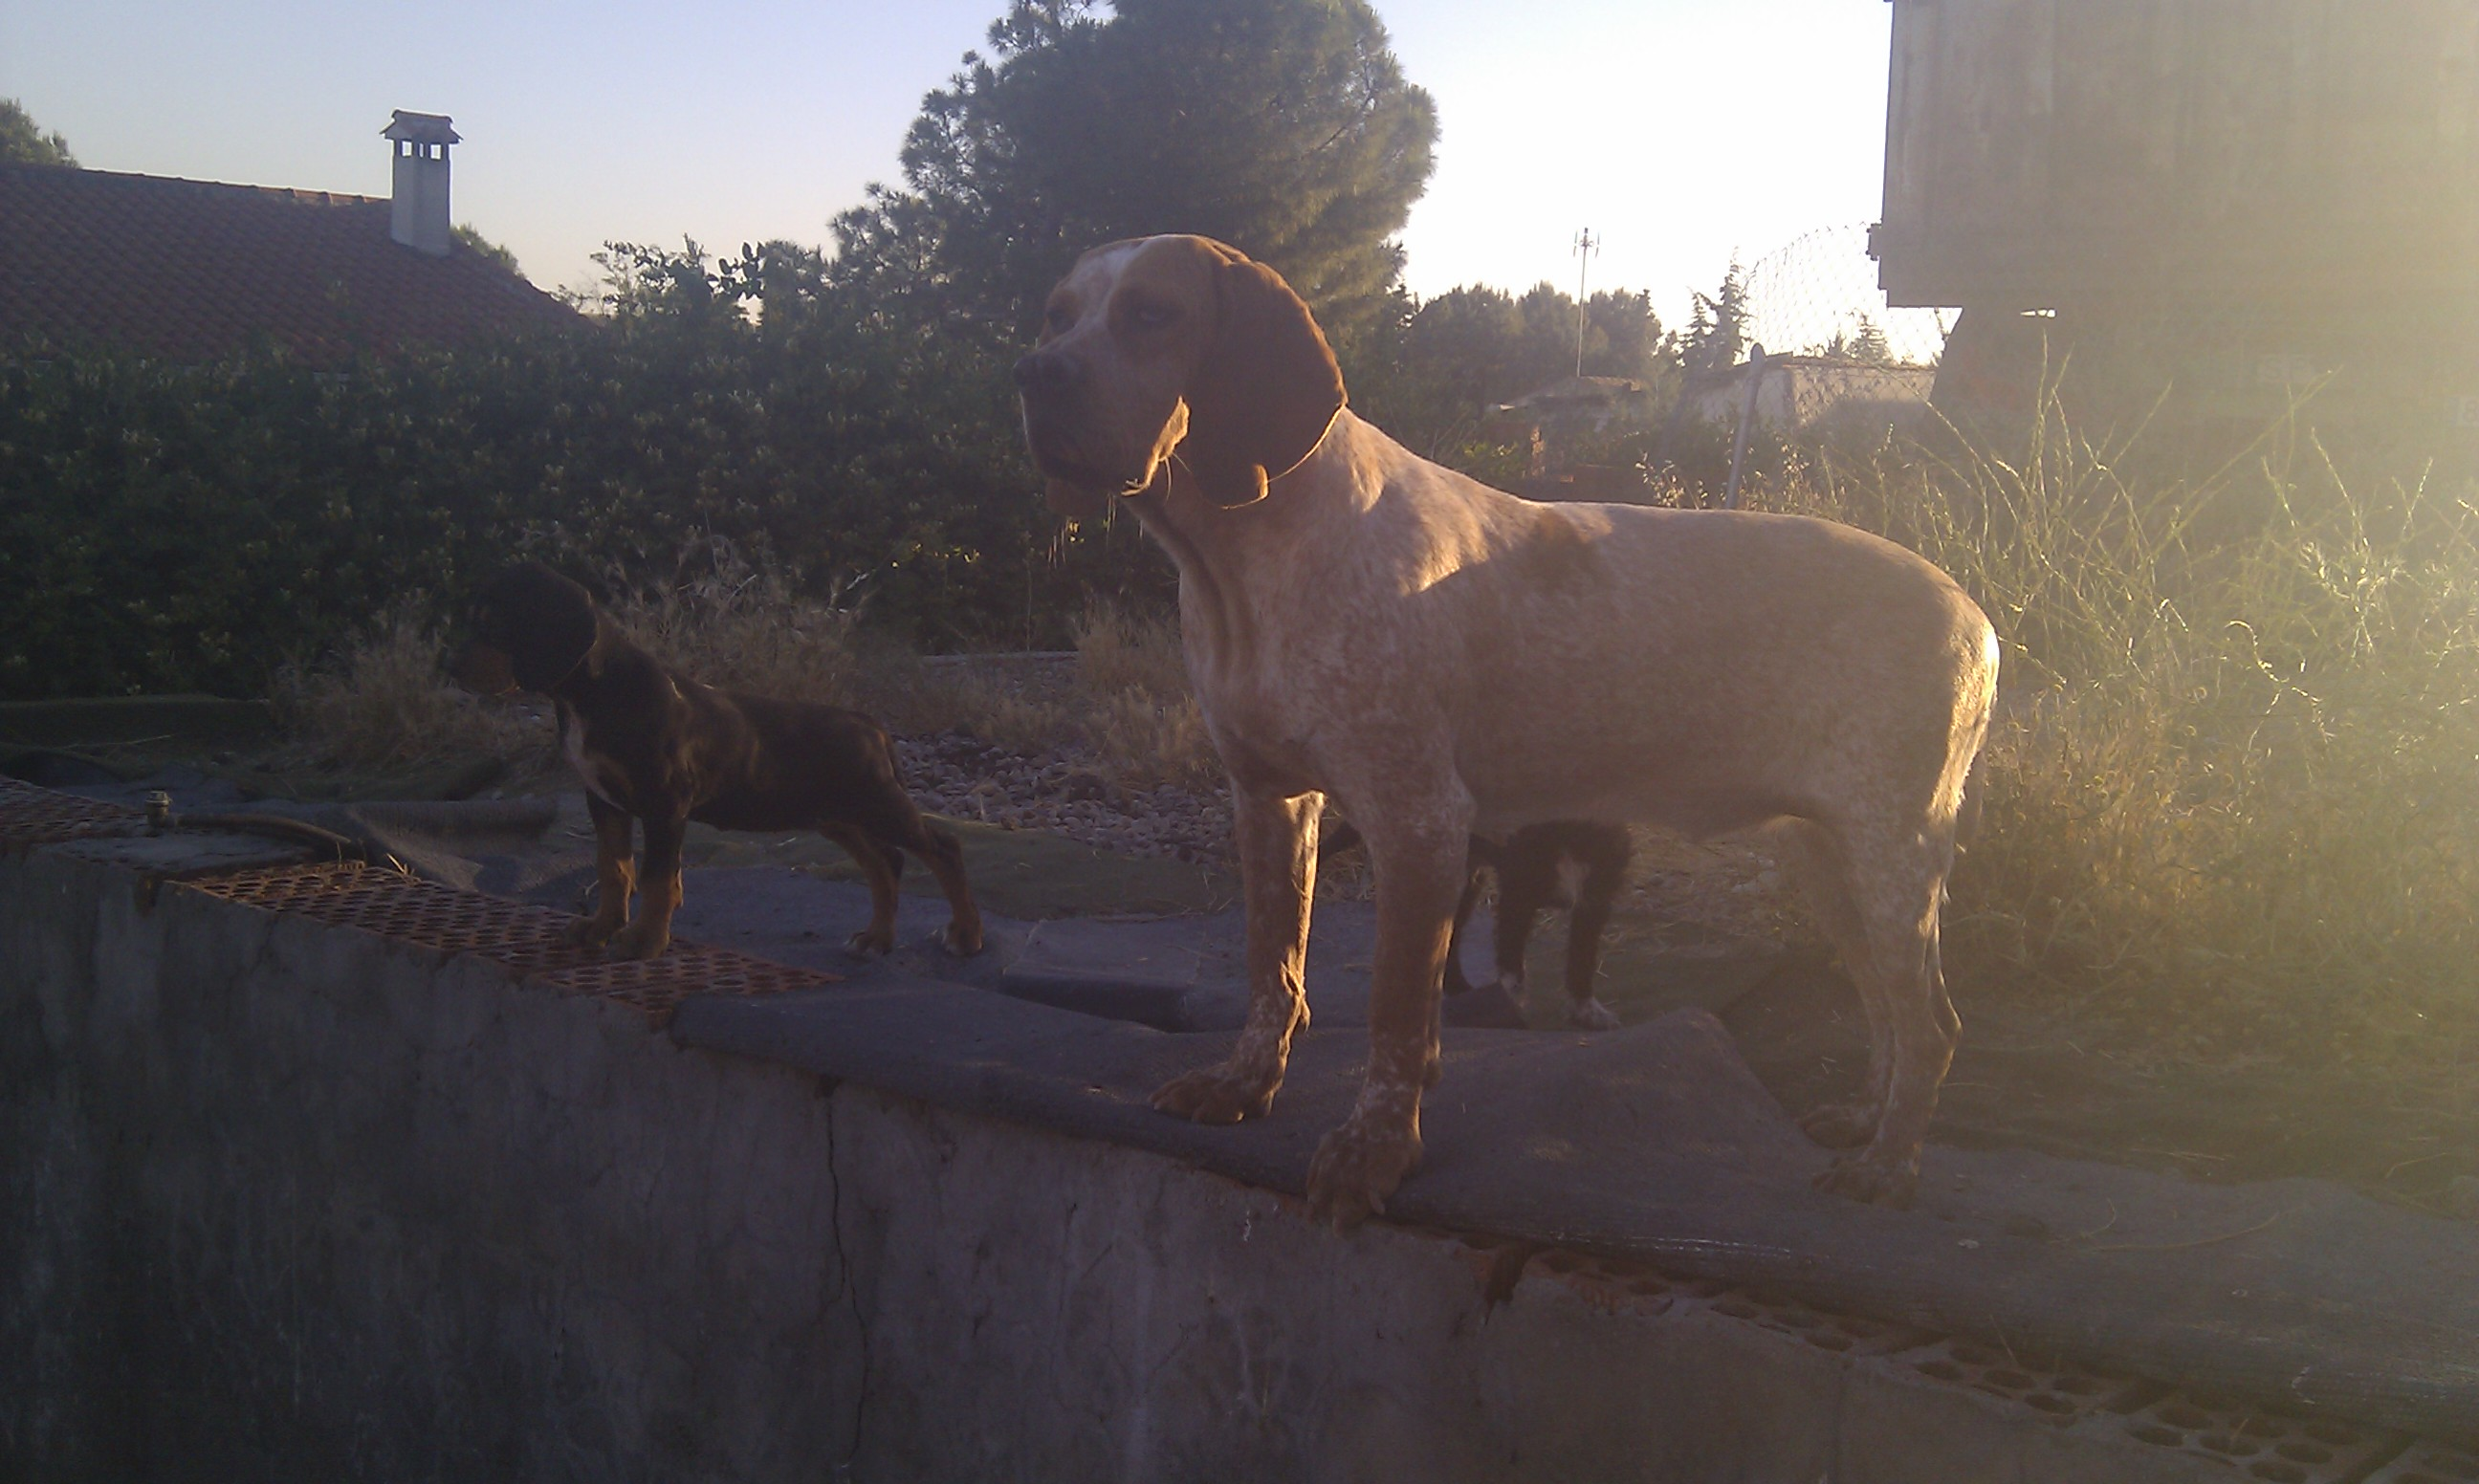 Pachon Navarro dogs on the roof wallpaper